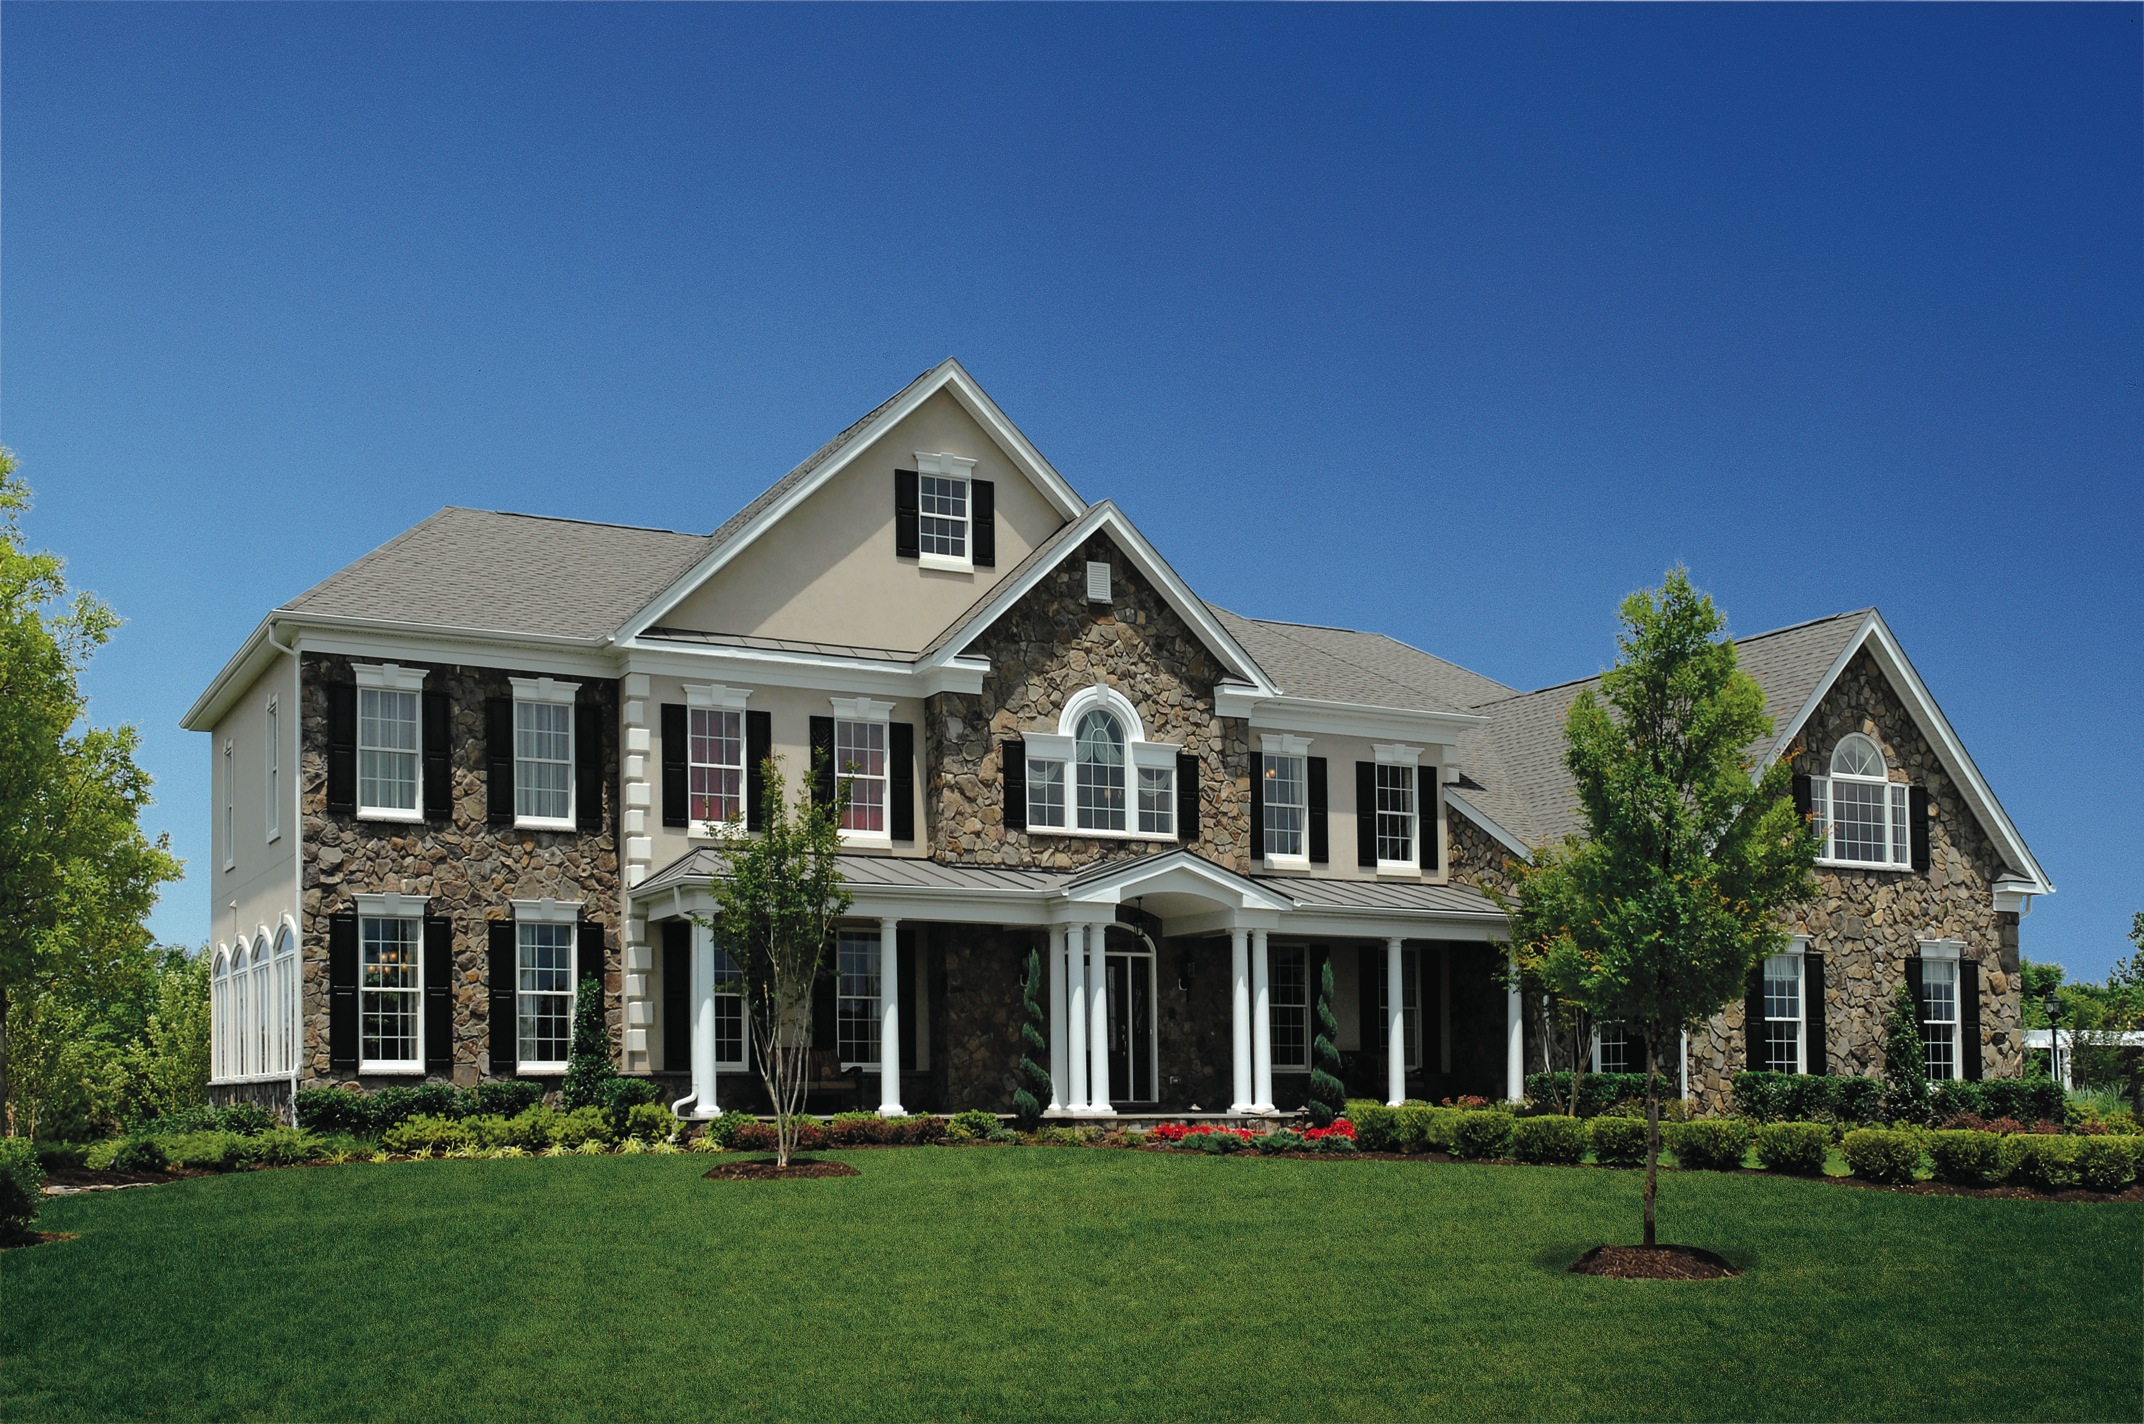 Toll brothers launches new mobile website for Houses for homes